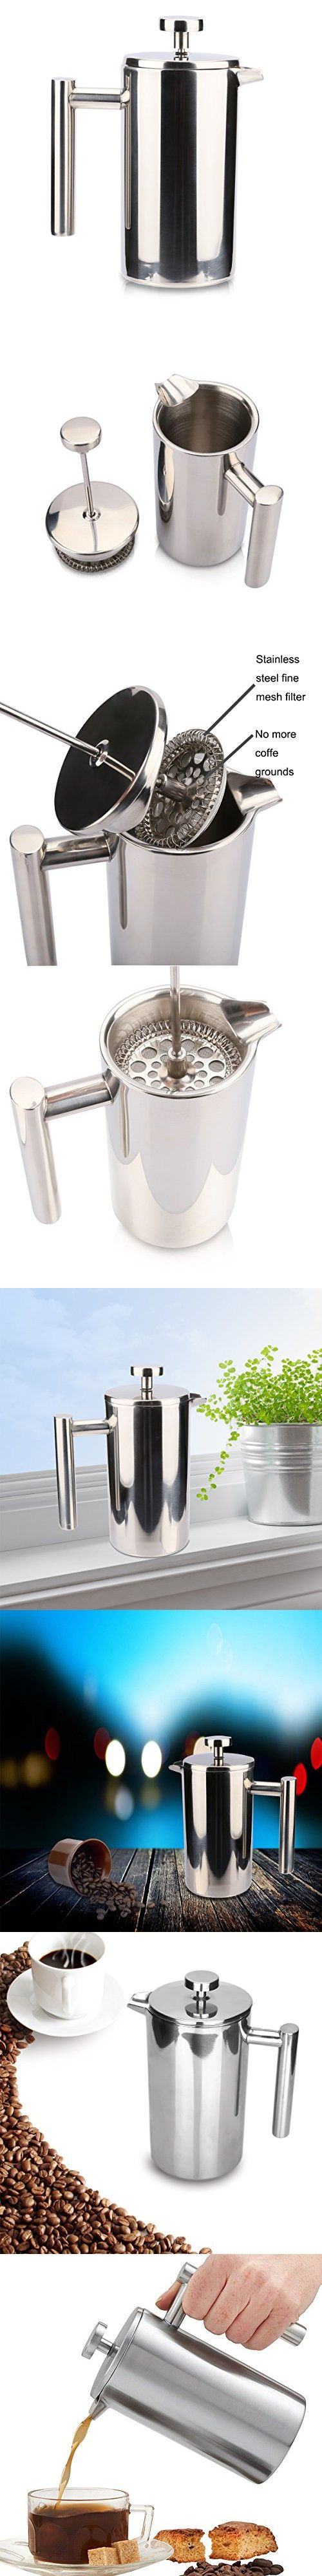 Powilling French Press Coffee Maker - Double Wall Stainless Steel French Coffee Press, 1 Liter